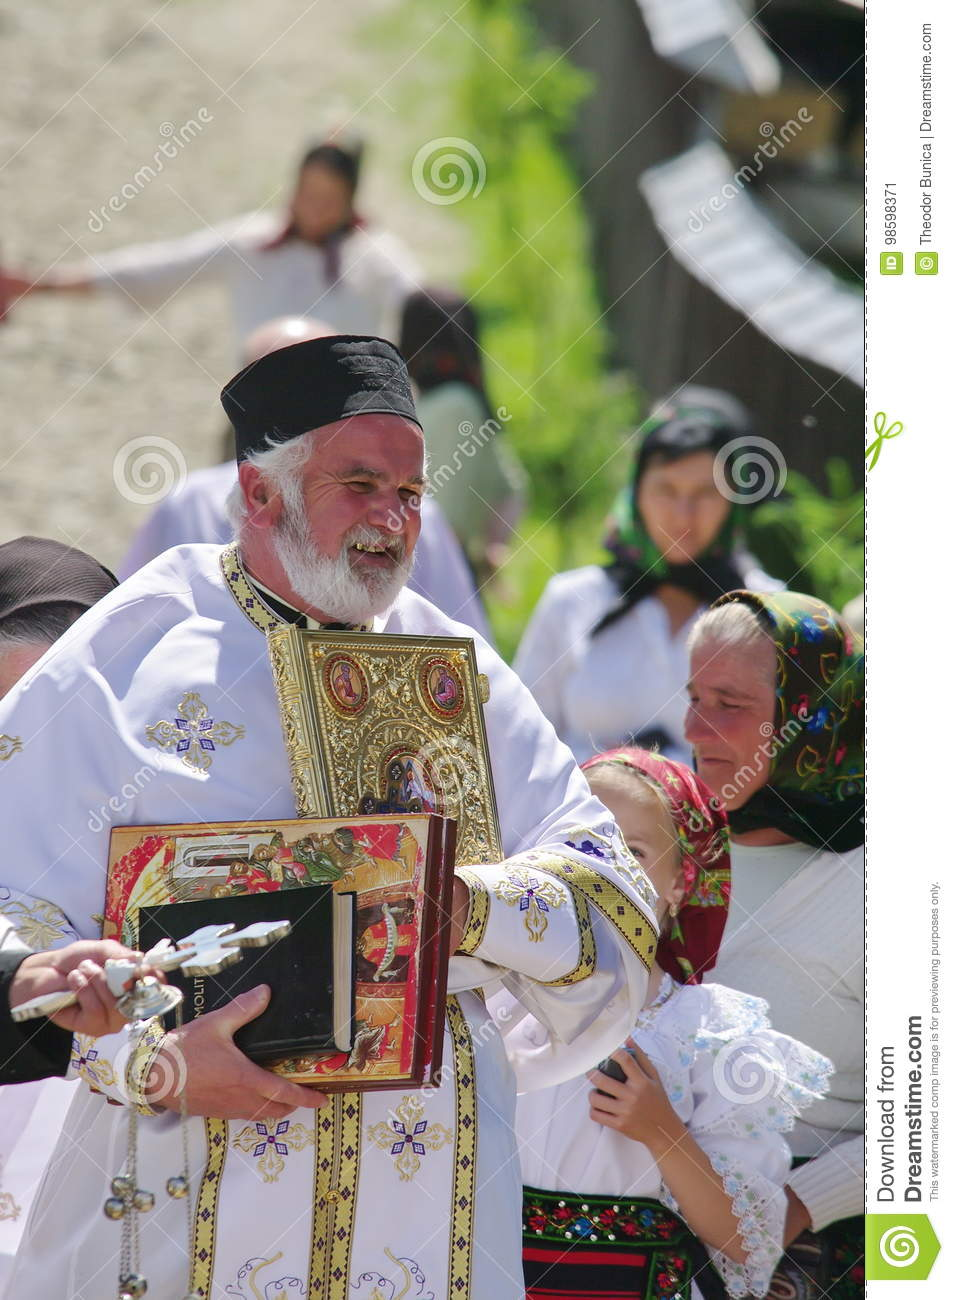 Orthodoxe priester en mensen in traditionele nationale kostuums - een dorp in Maramures, Roemenië